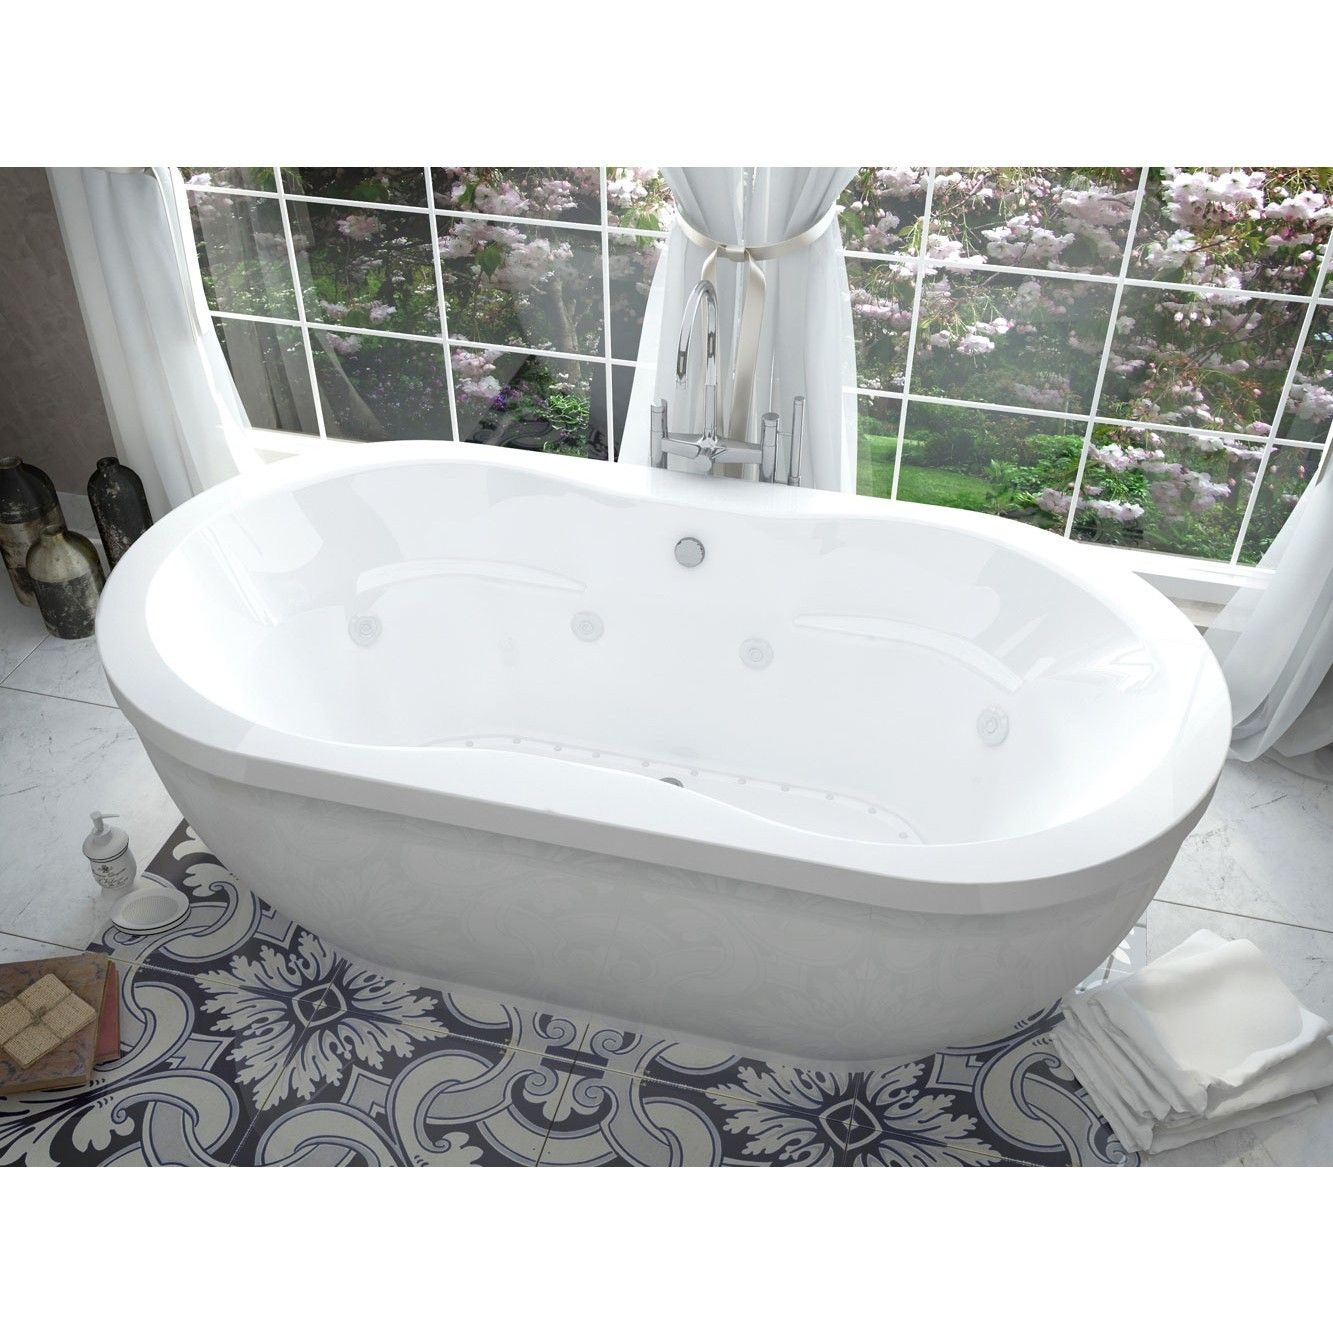 Freestanding Tub With Air Jets.  freestanding jacuzzi bathtub Steam shower